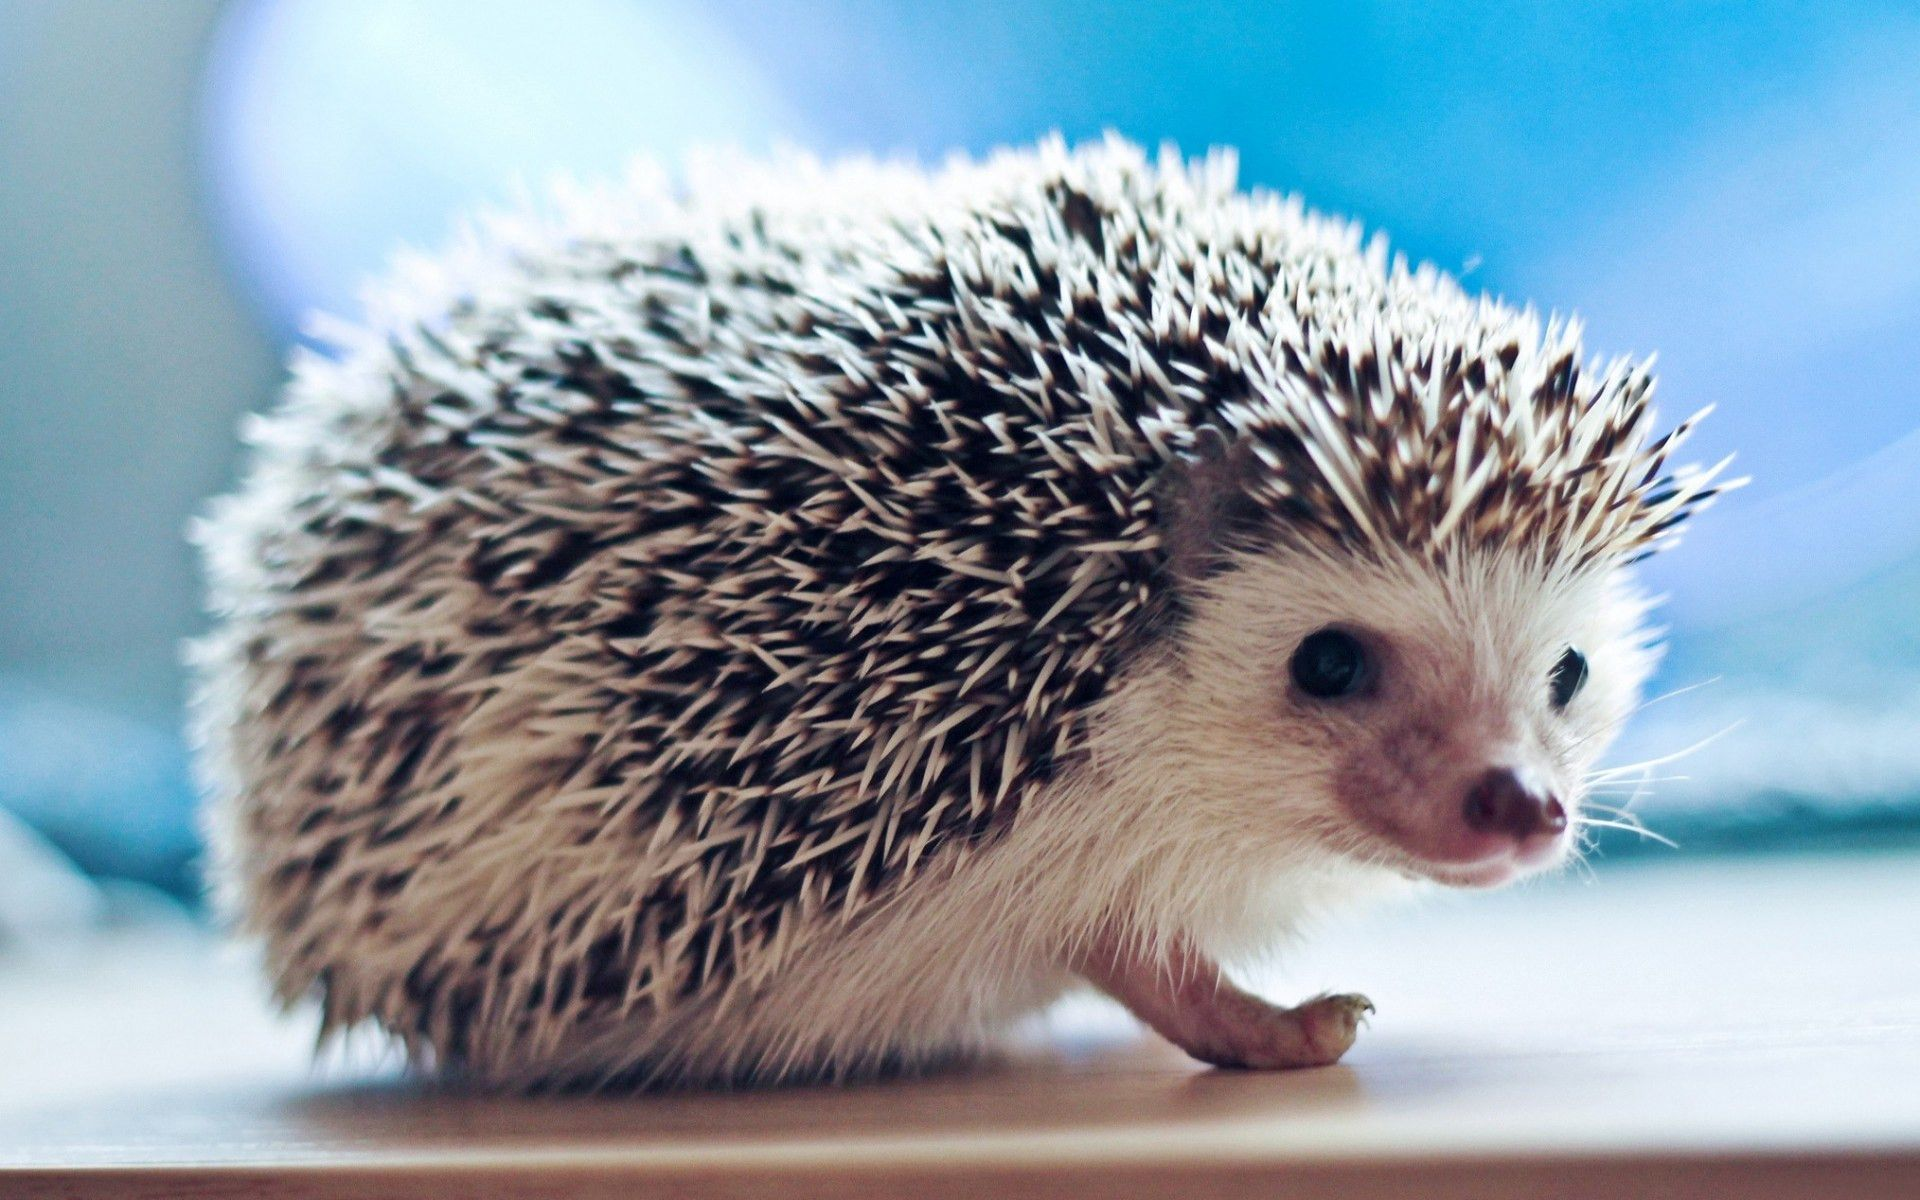 Hedgehog Wallpapers 39 Top Free Hedgehog Images For Desktop Cutest Animals On Earth Animals Beautiful Most Beautiful Animals